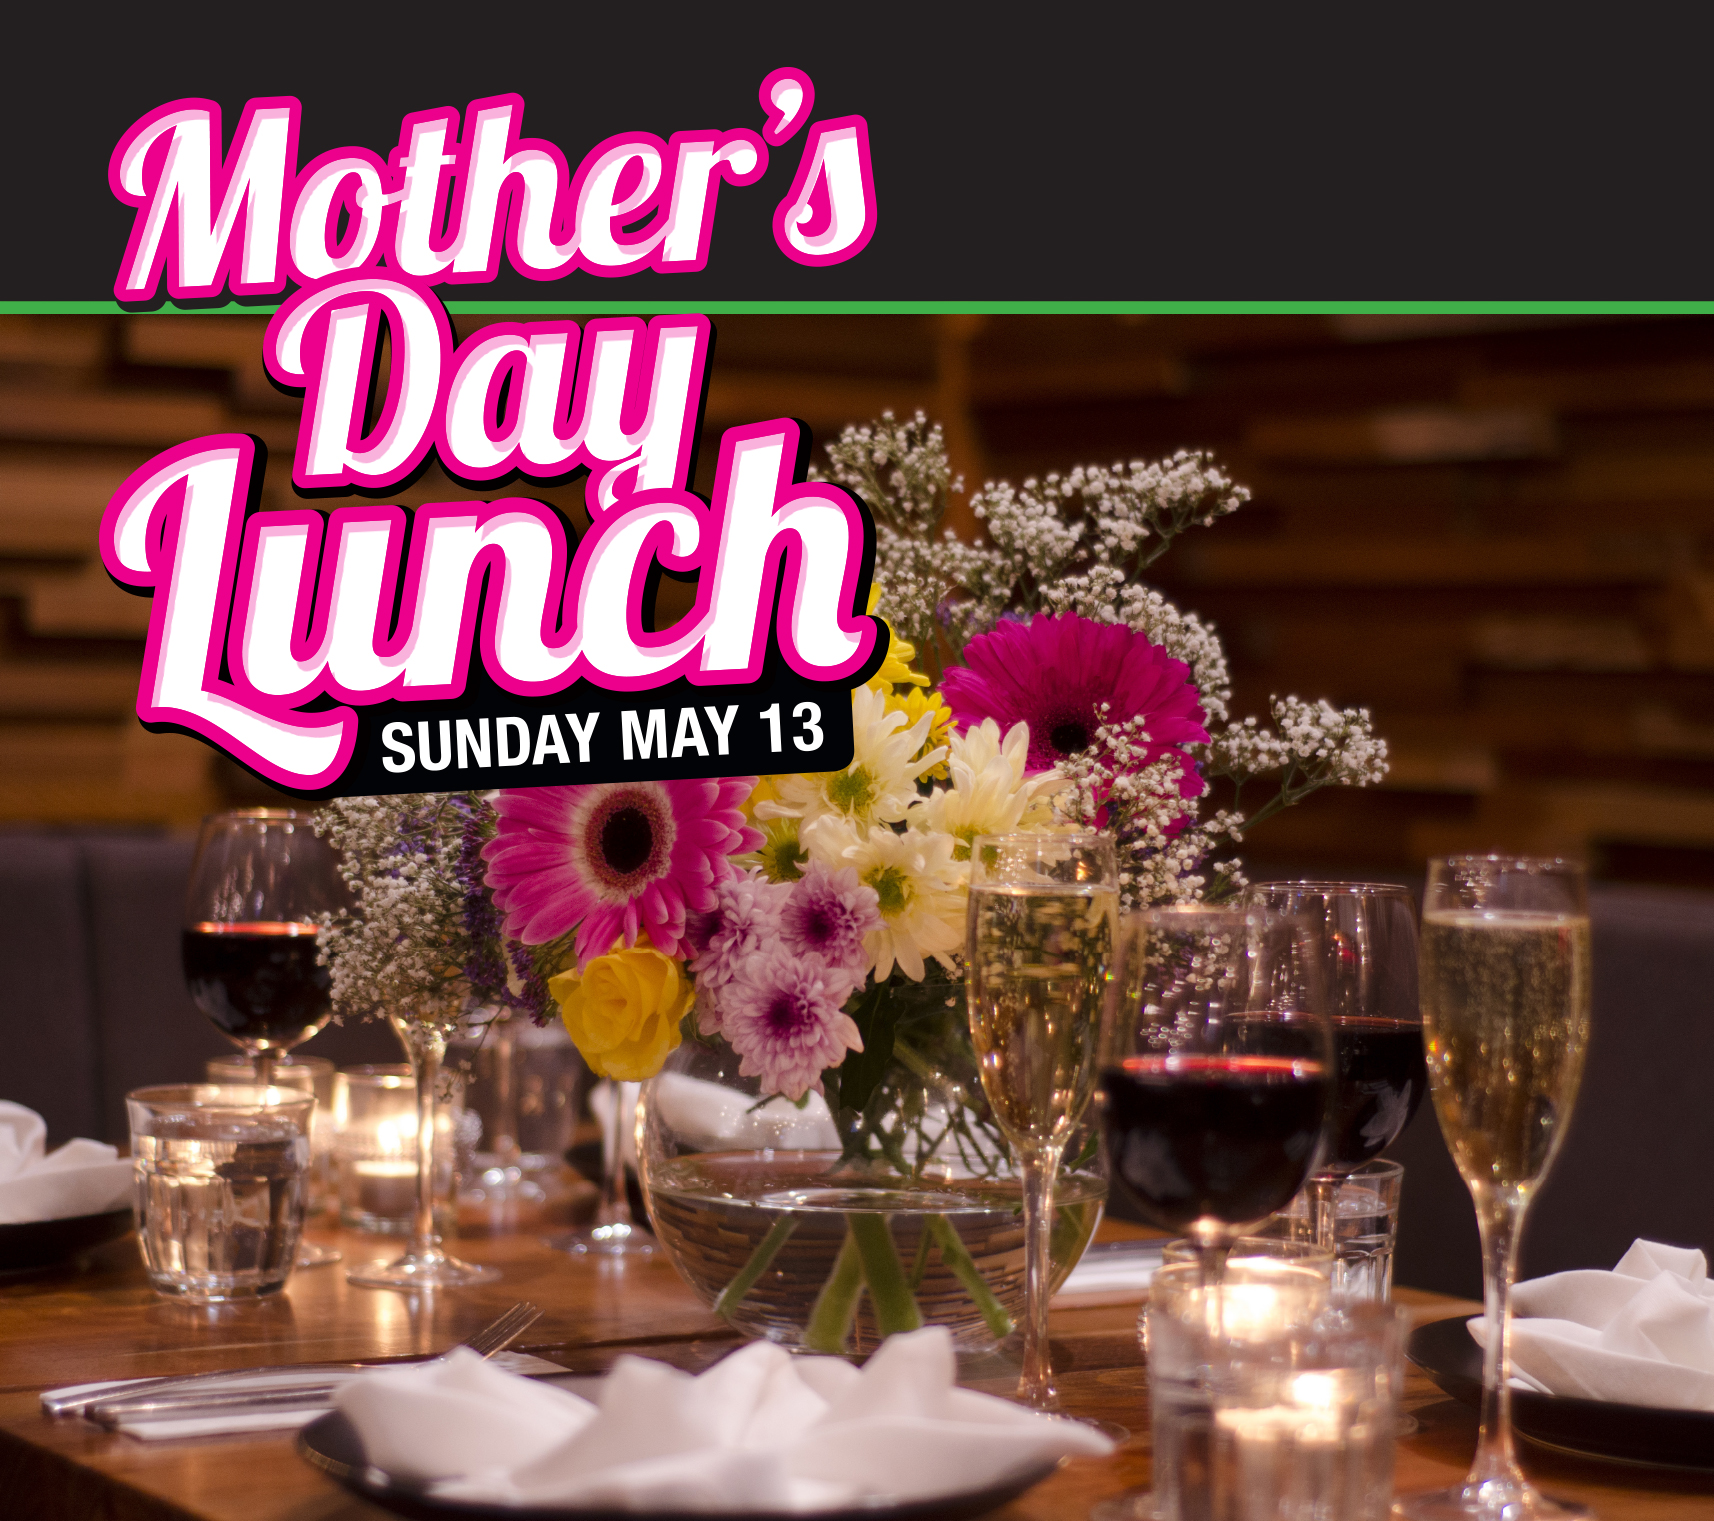 Mother's Day Lunch at Cabin 401 Bar and Grill Bibra Lake